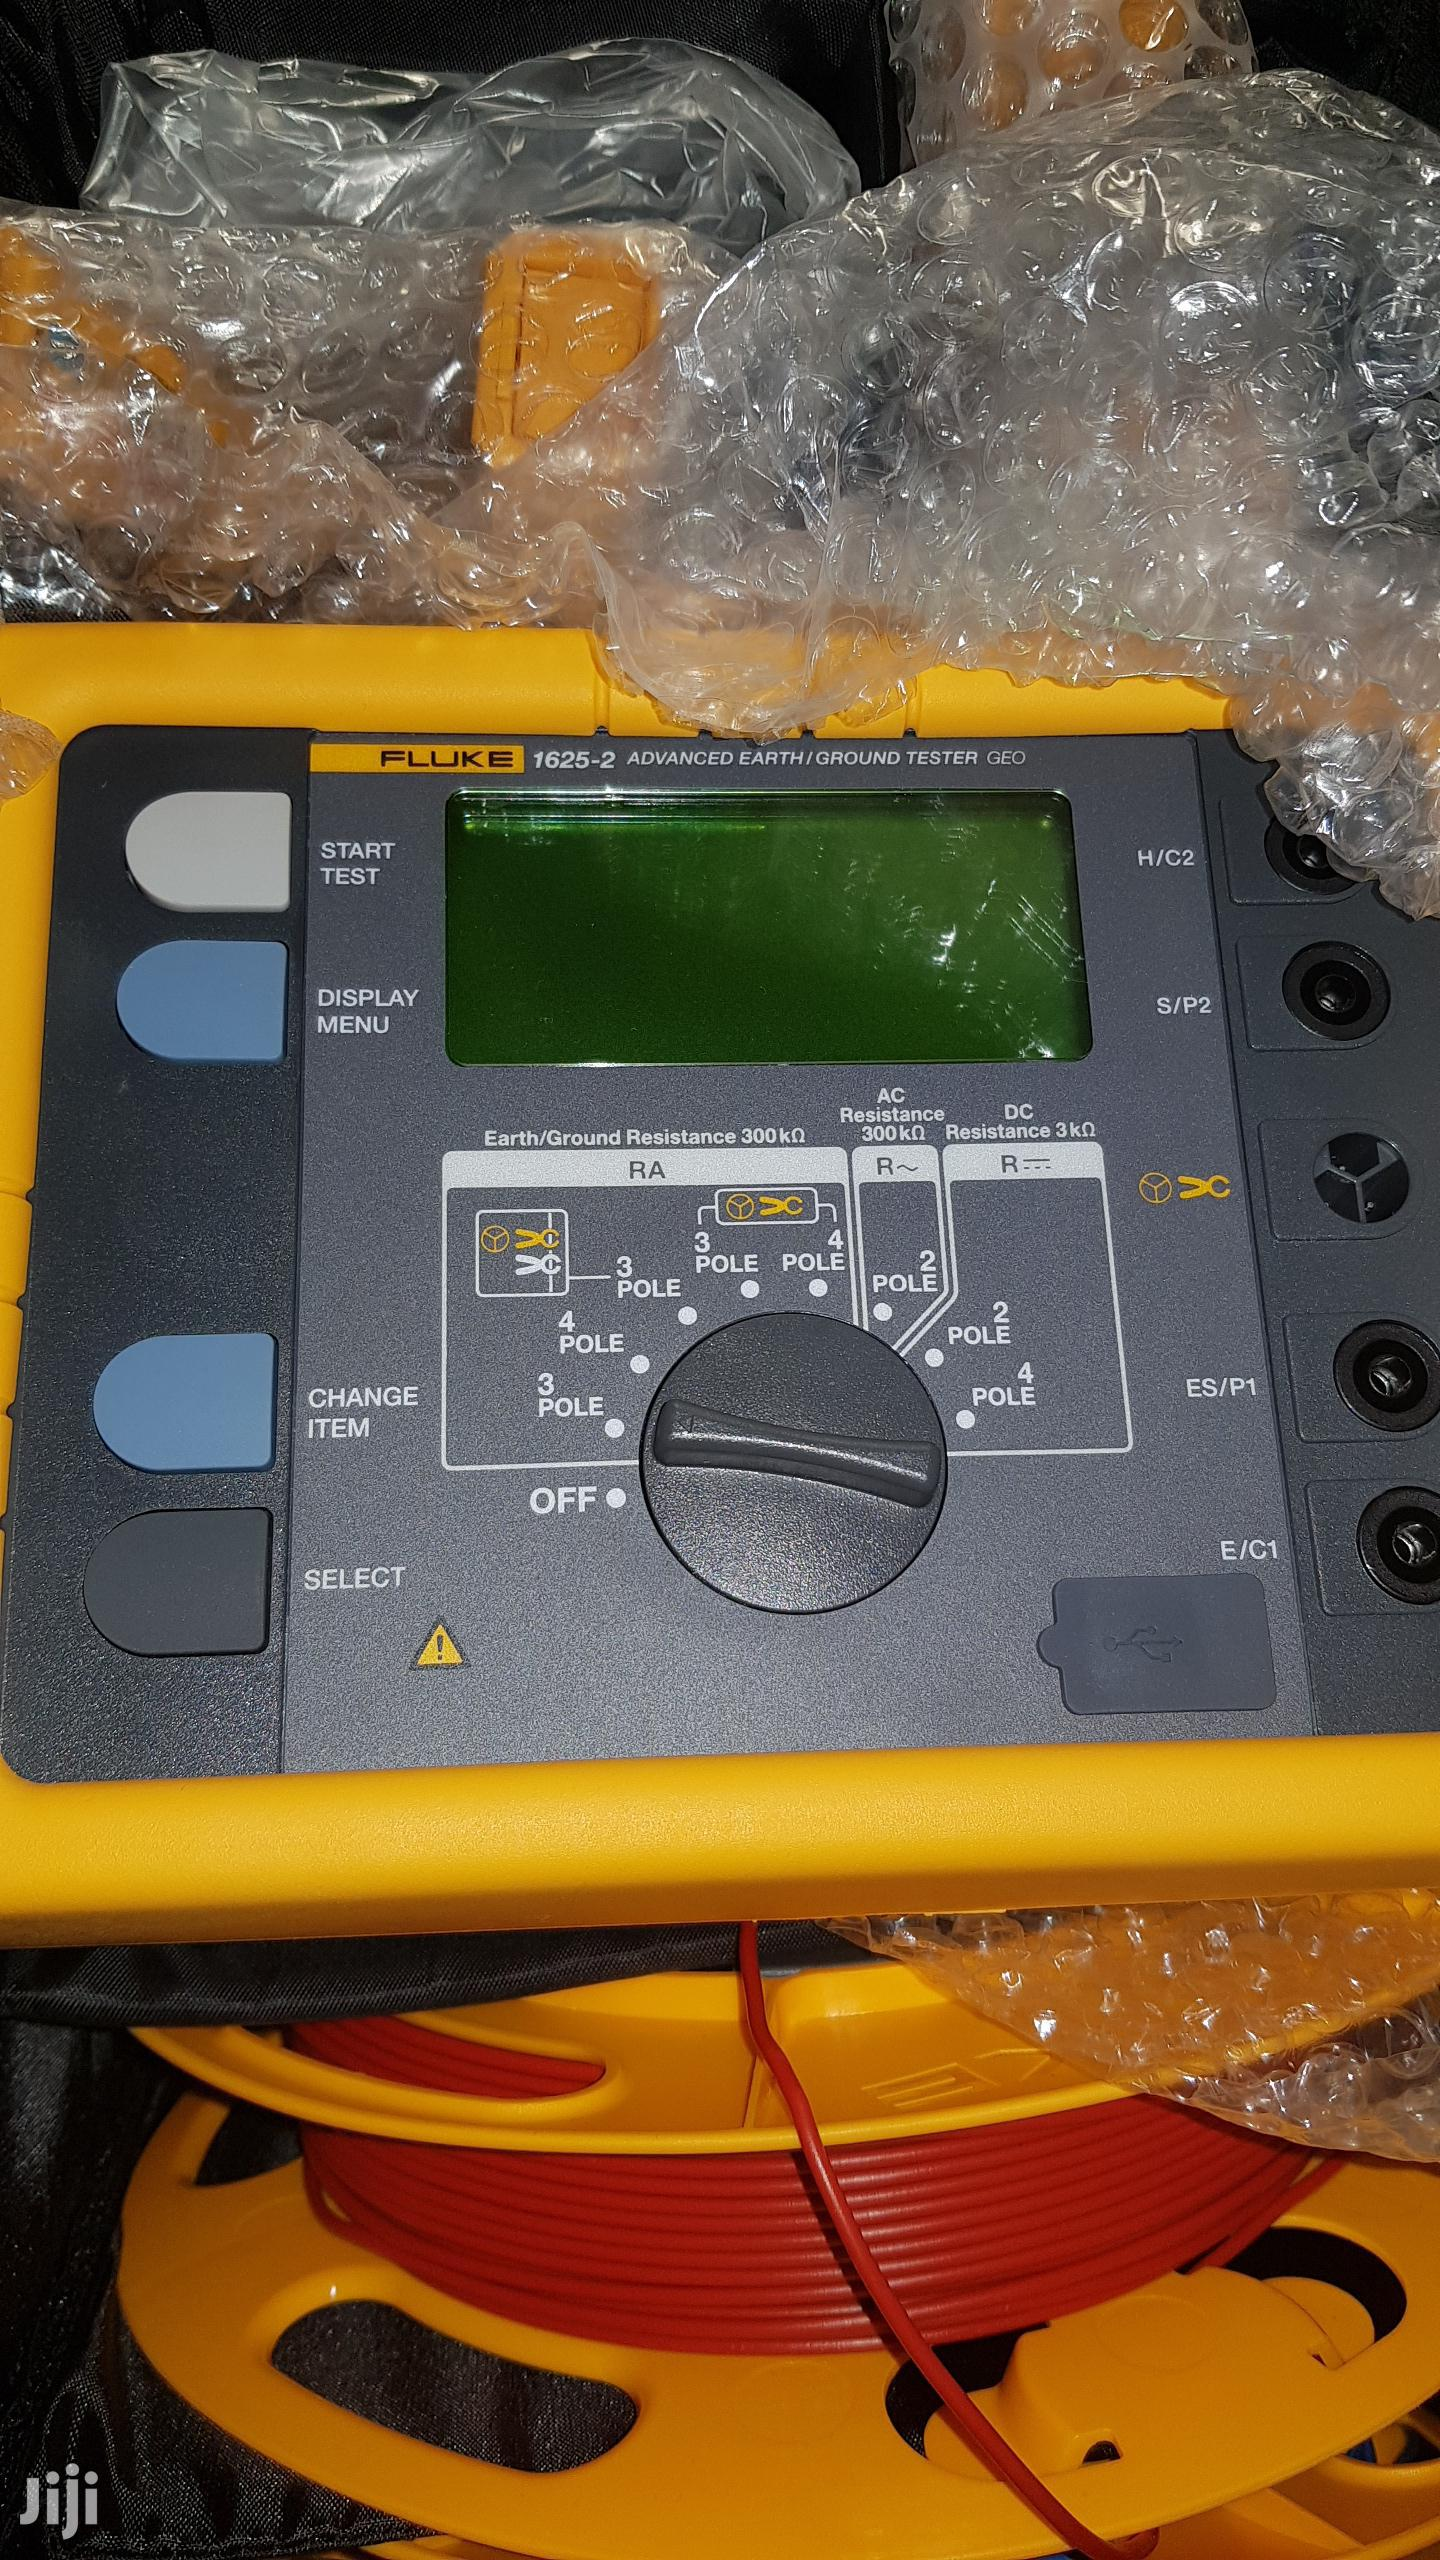 Fluke 1625kit Geo Earth Ground Tester | Measuring & Layout Tools for sale in Ojo, Lagos State, Nigeria